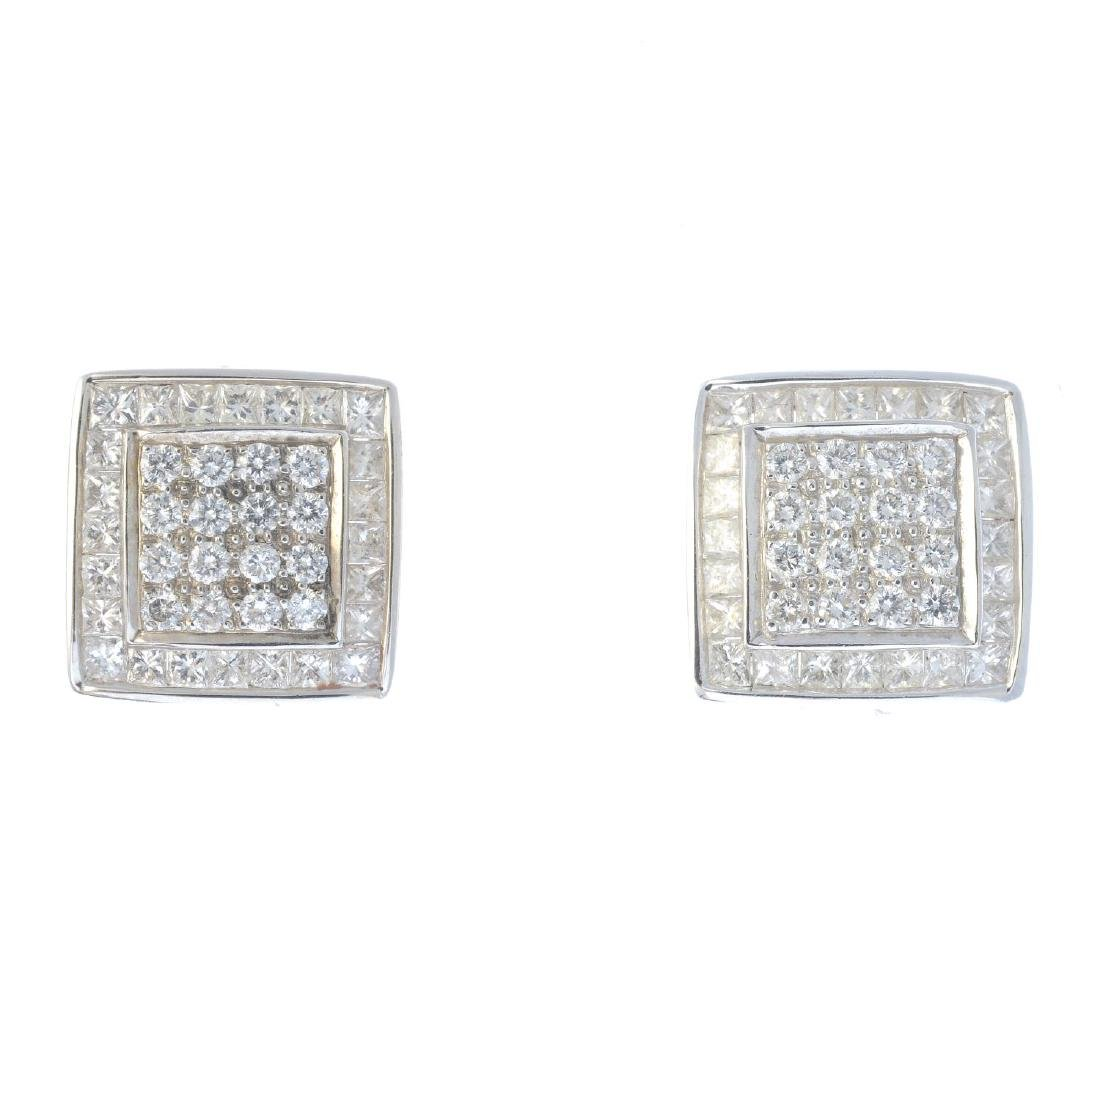 A pair of diamond cluster earrings. Designed as a